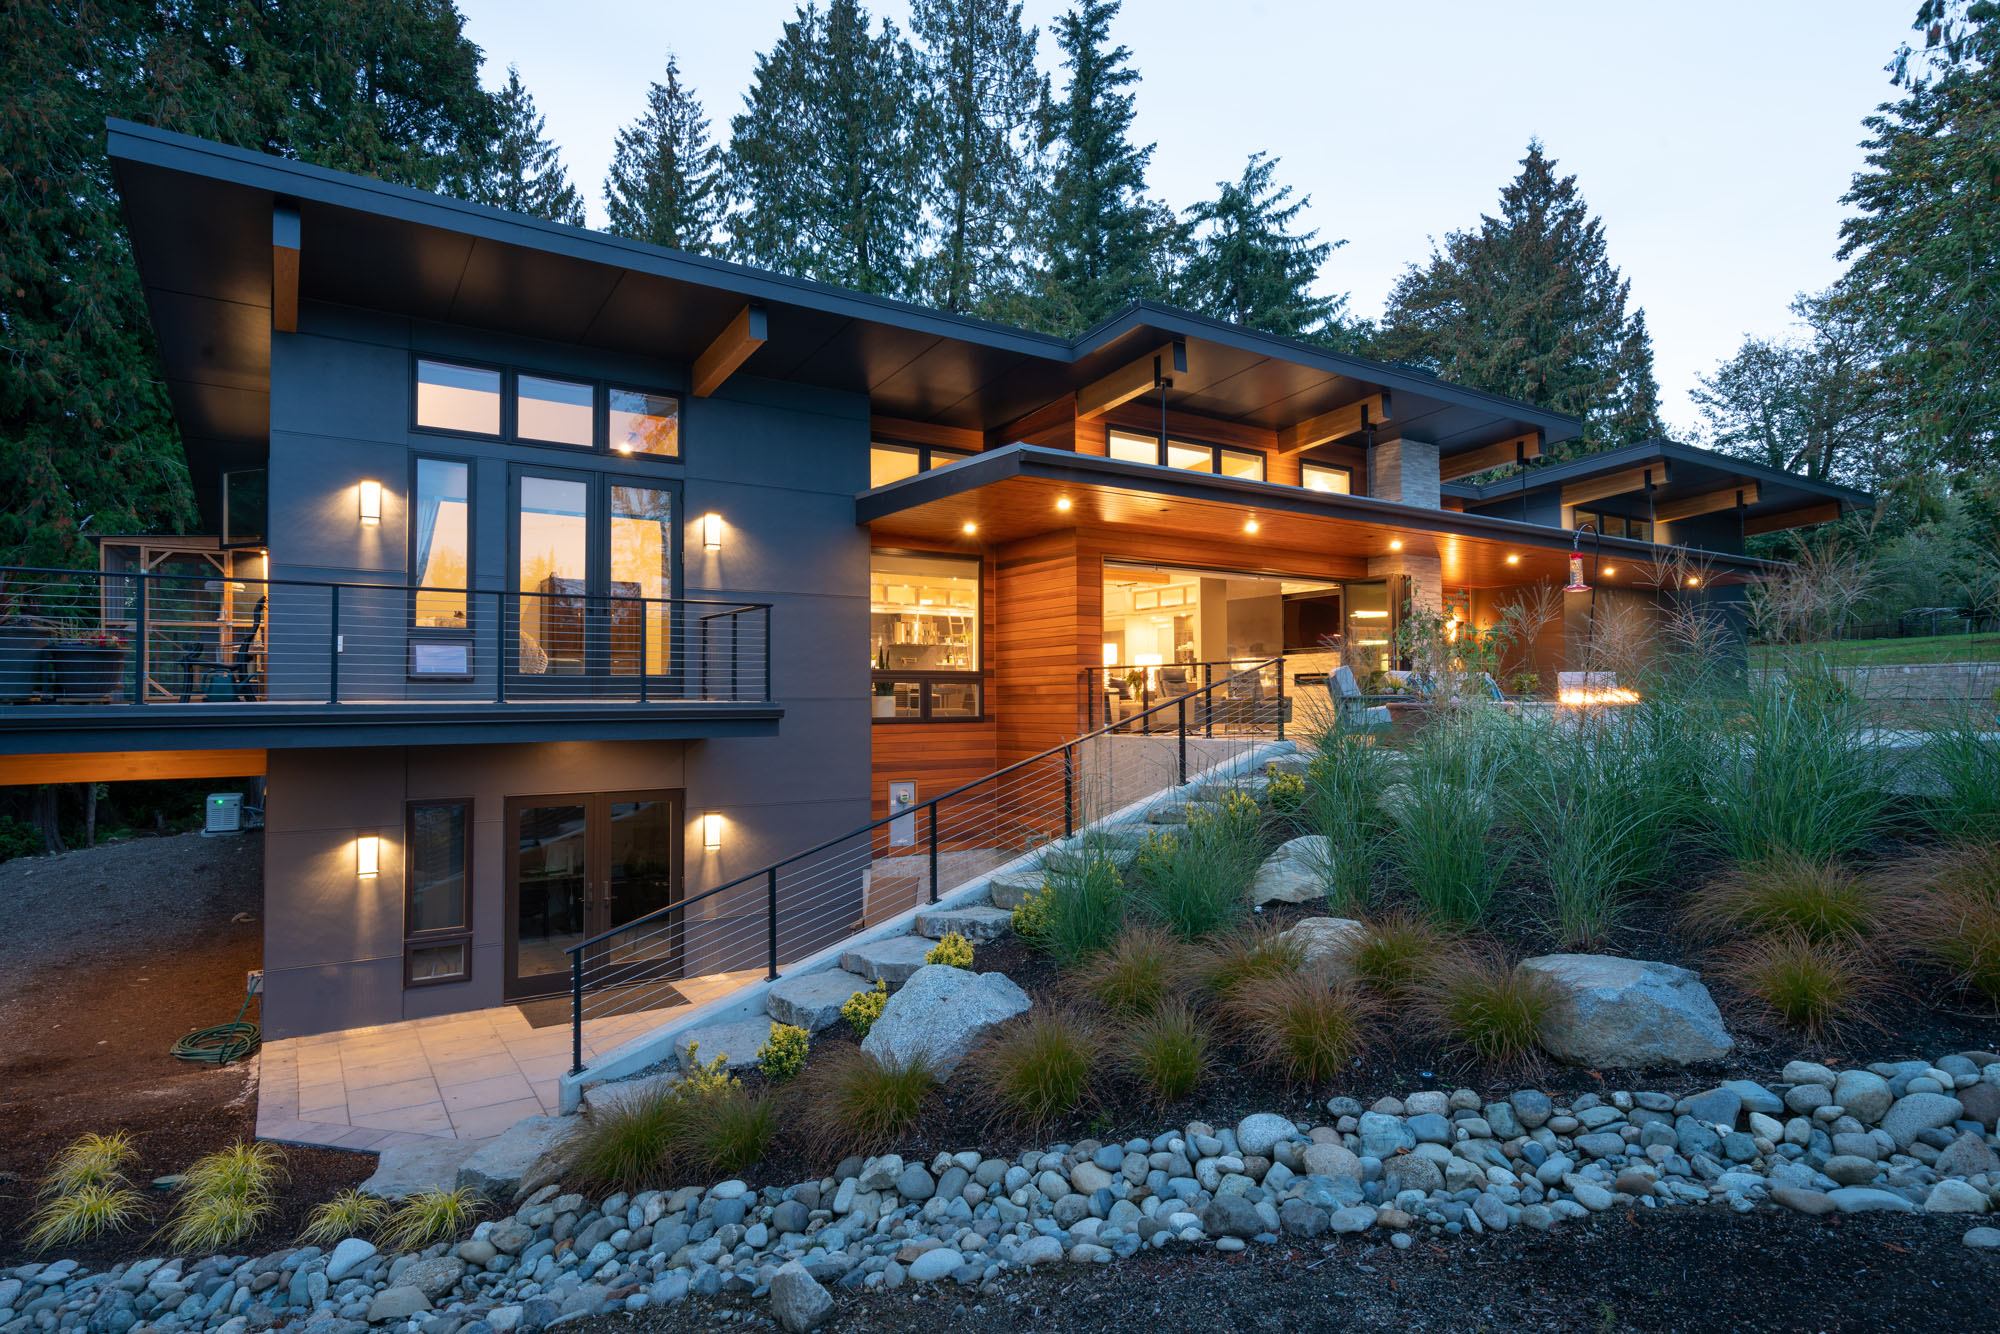 Fifth slide - Modern home in Redmond Washington with a fir beam canopy in a terraced landscape